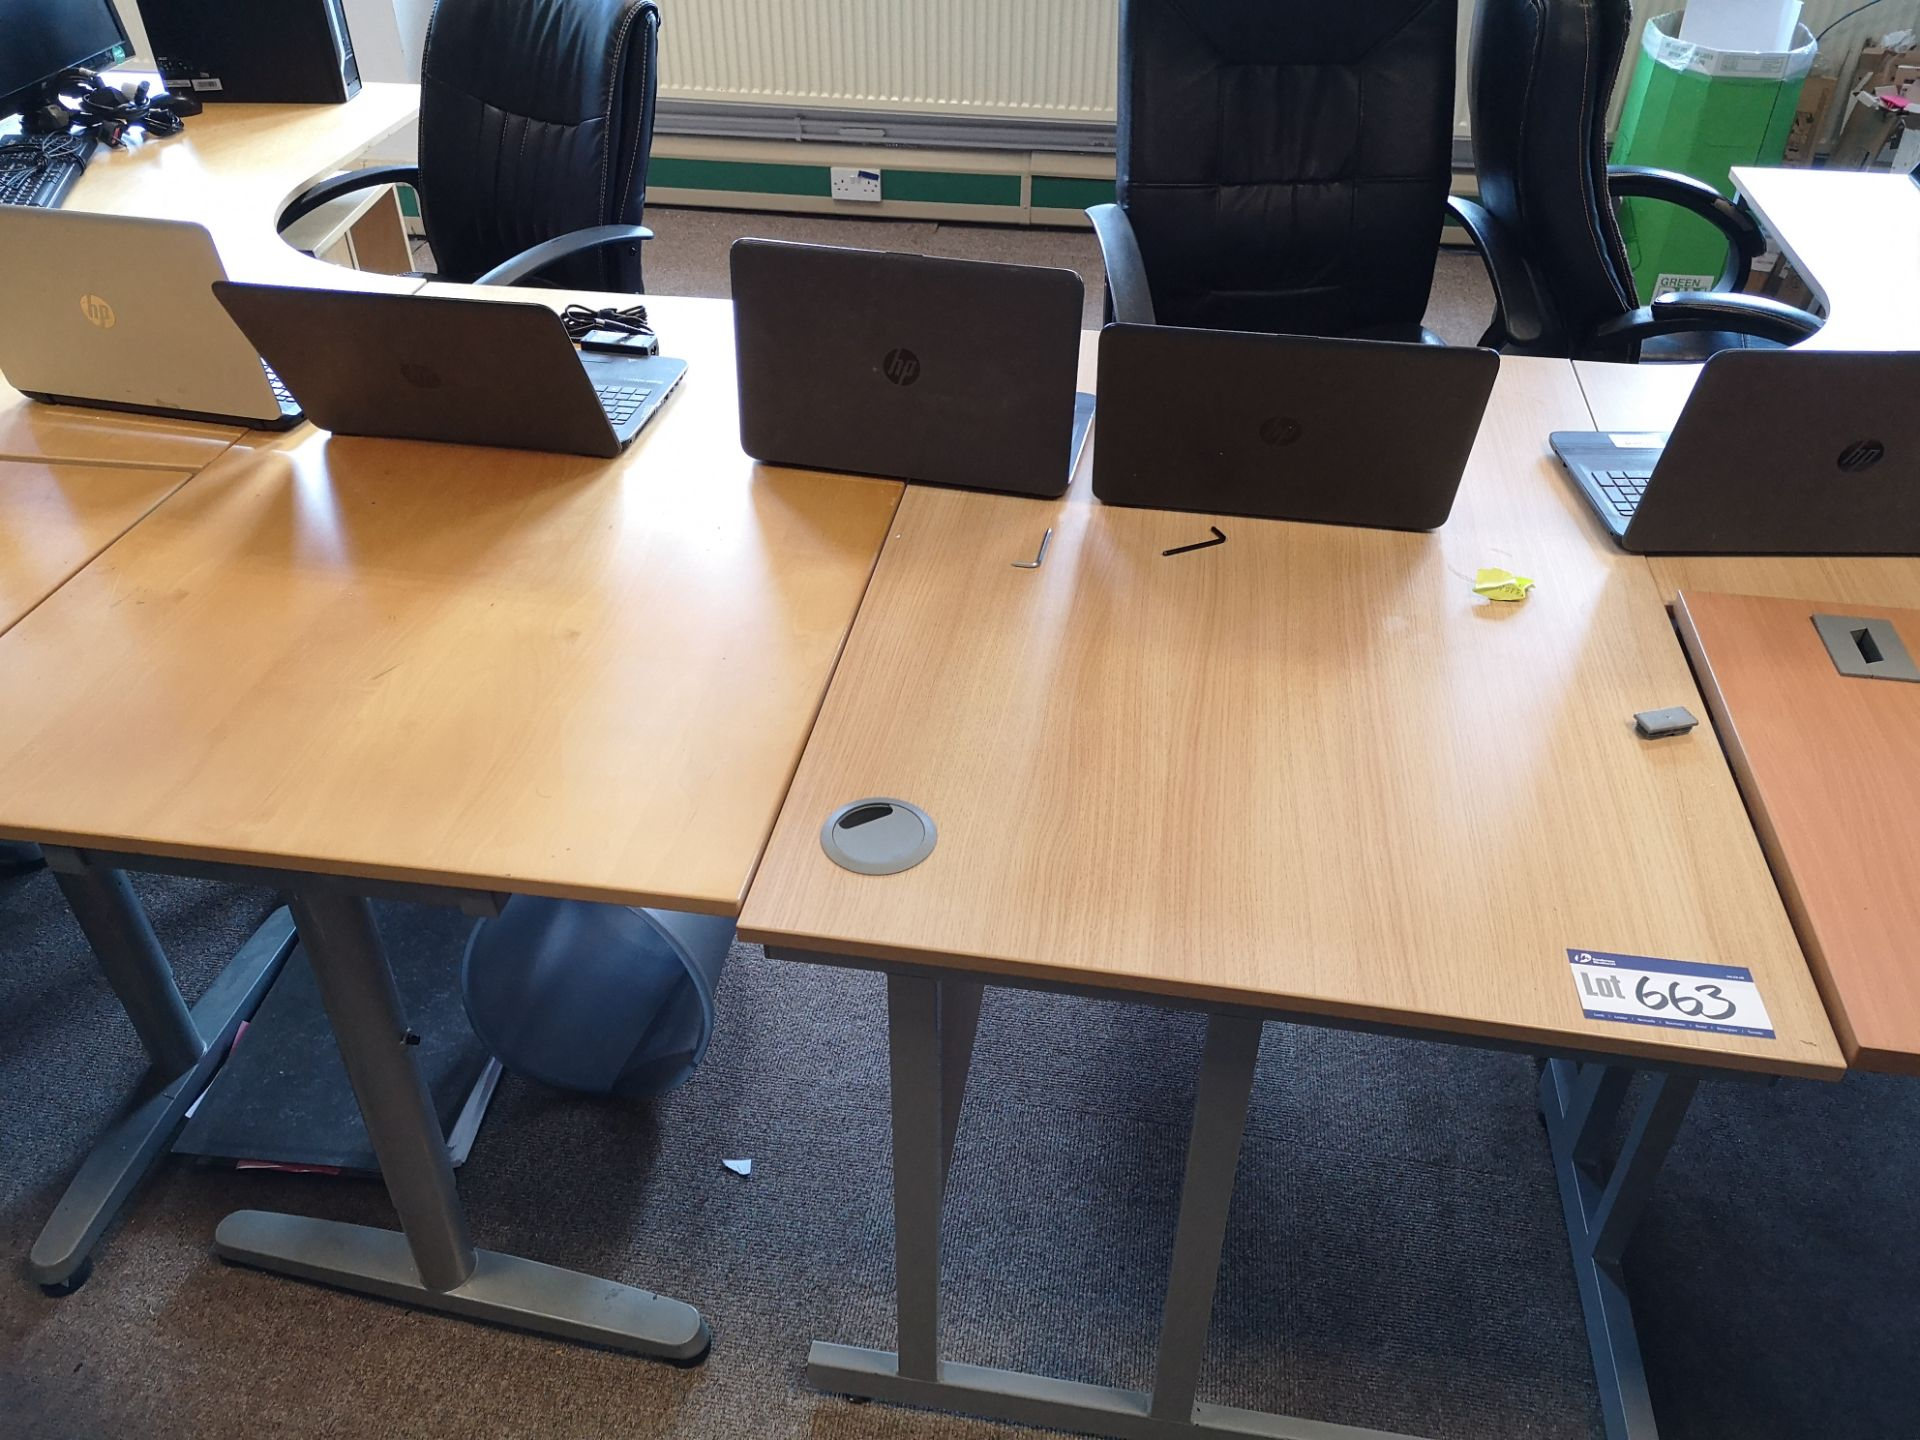 Lot 663 - Two Light Oak Veneered Workstations, with two ligh